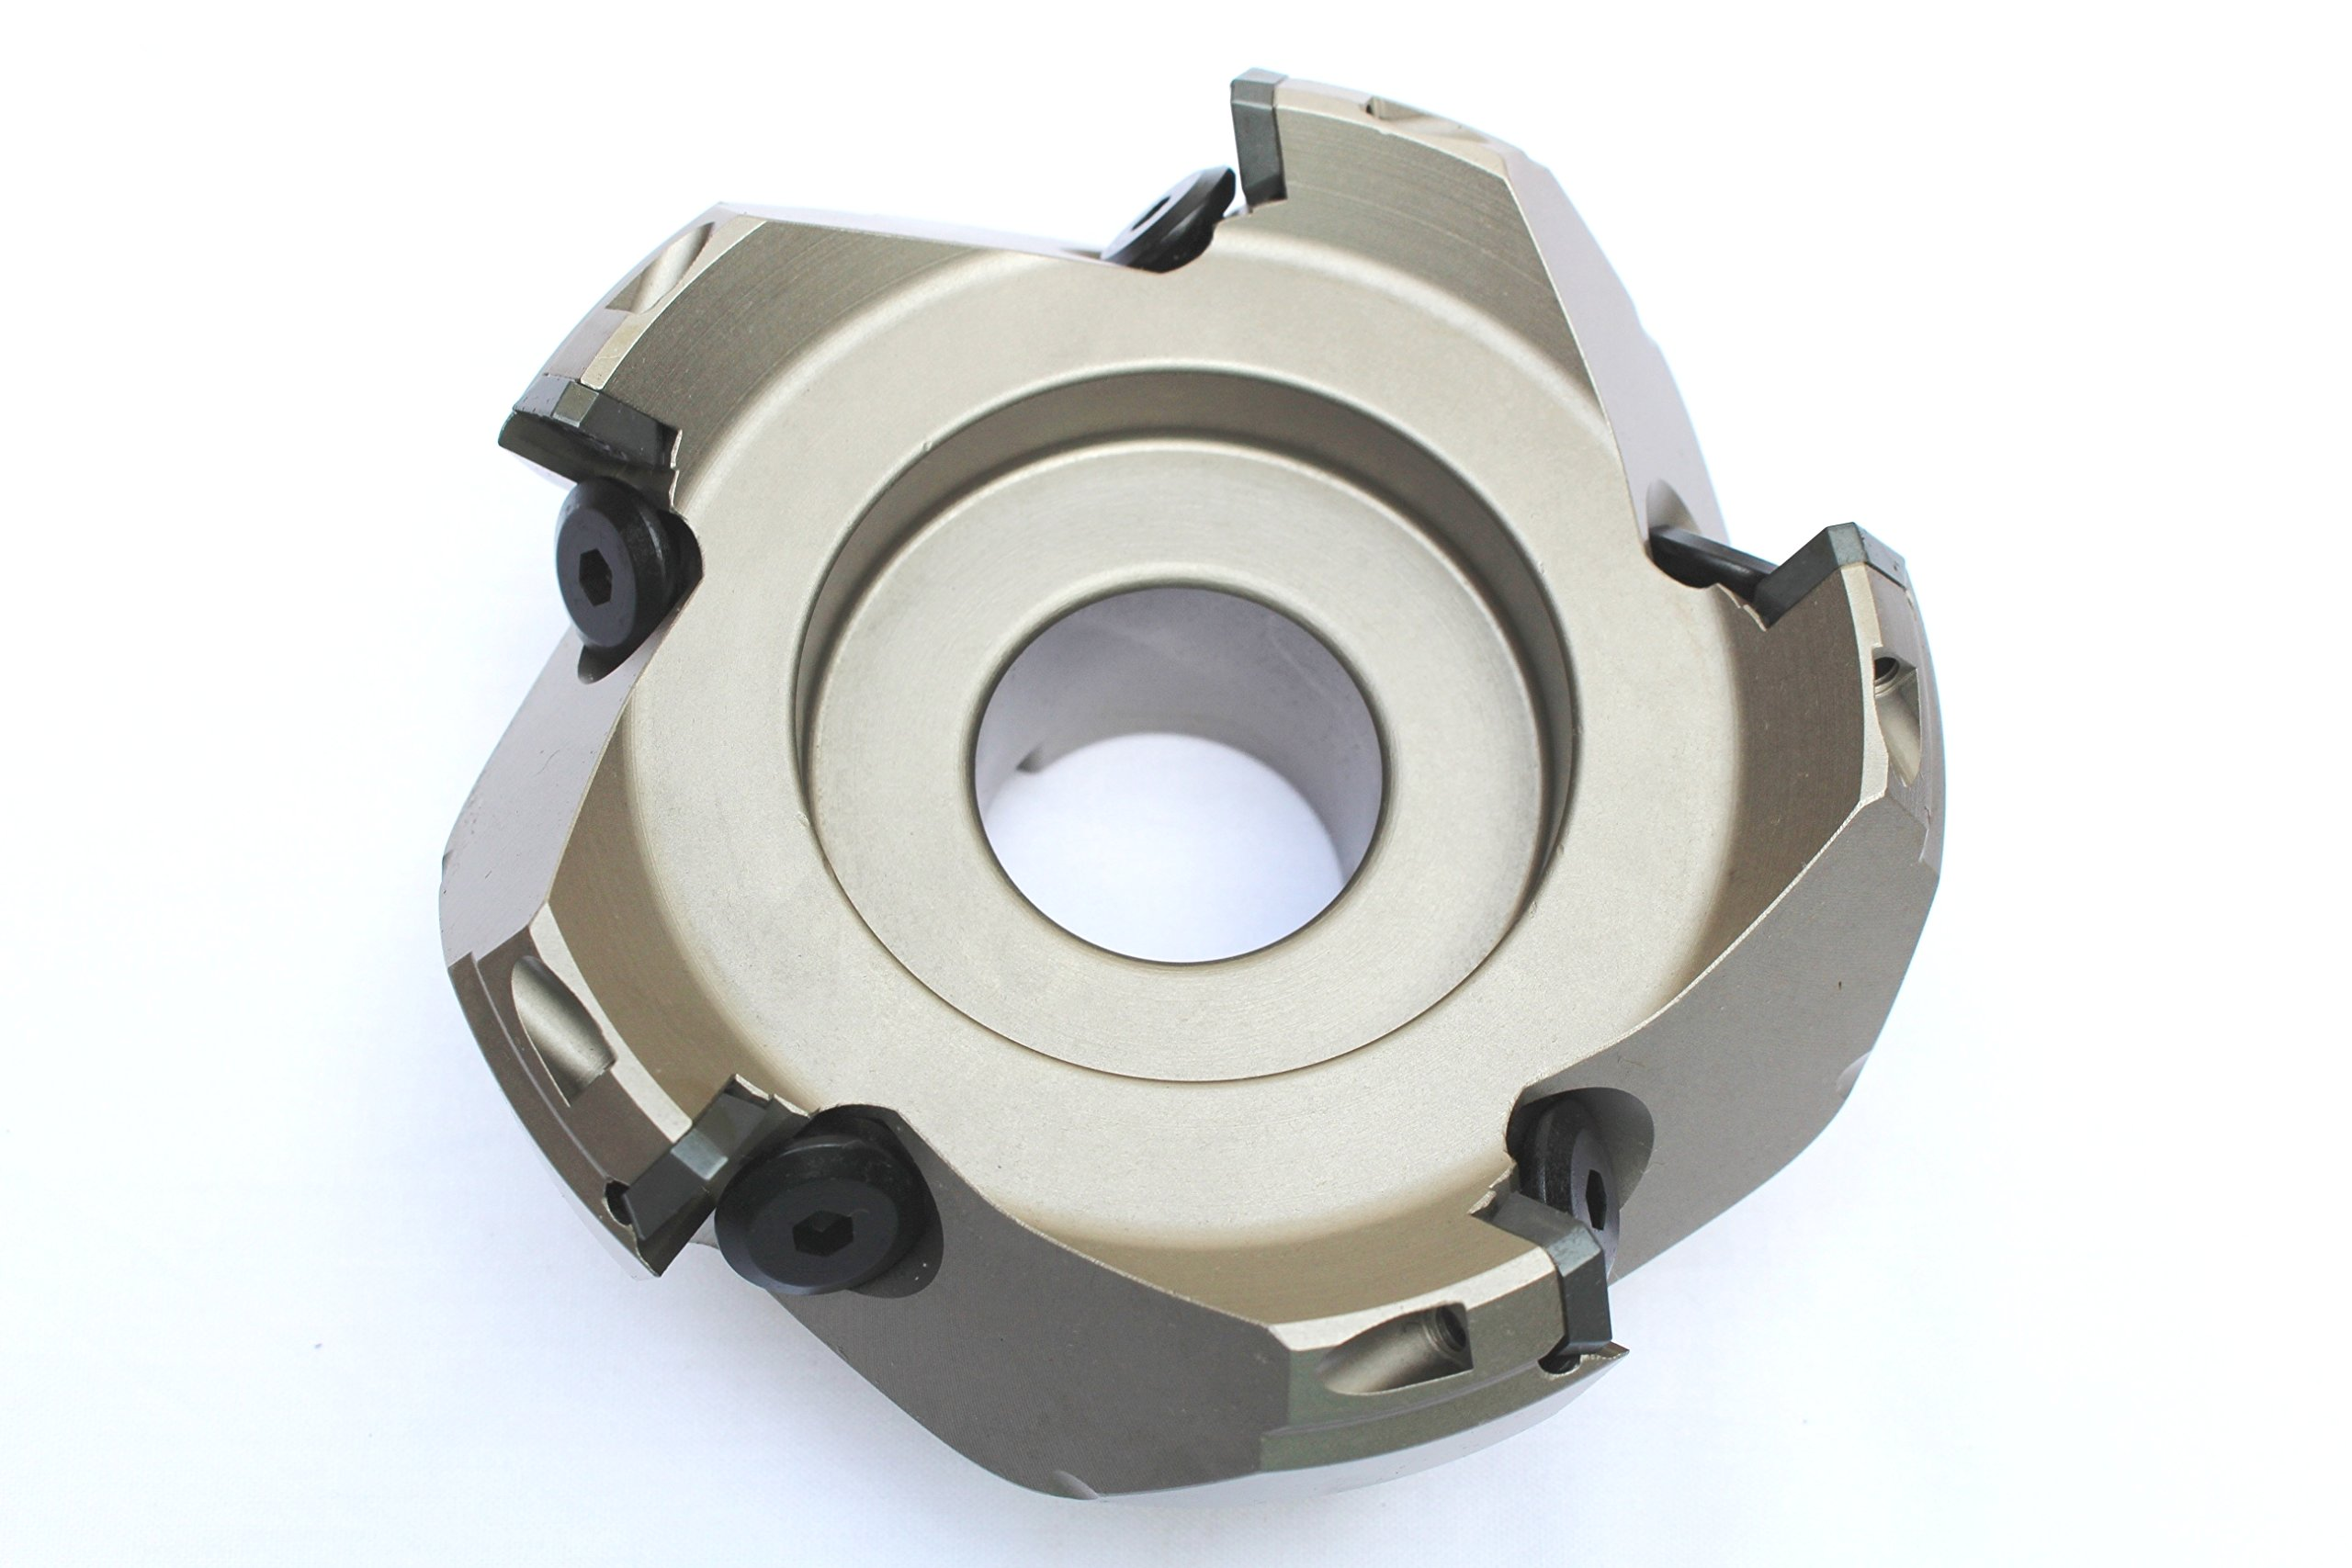 HHIP 2067-4000 4'' x 1-1/4'' Bore 45 Degree SE42 Index able Face Mill, 5 Teeth, 1.97'' OAL